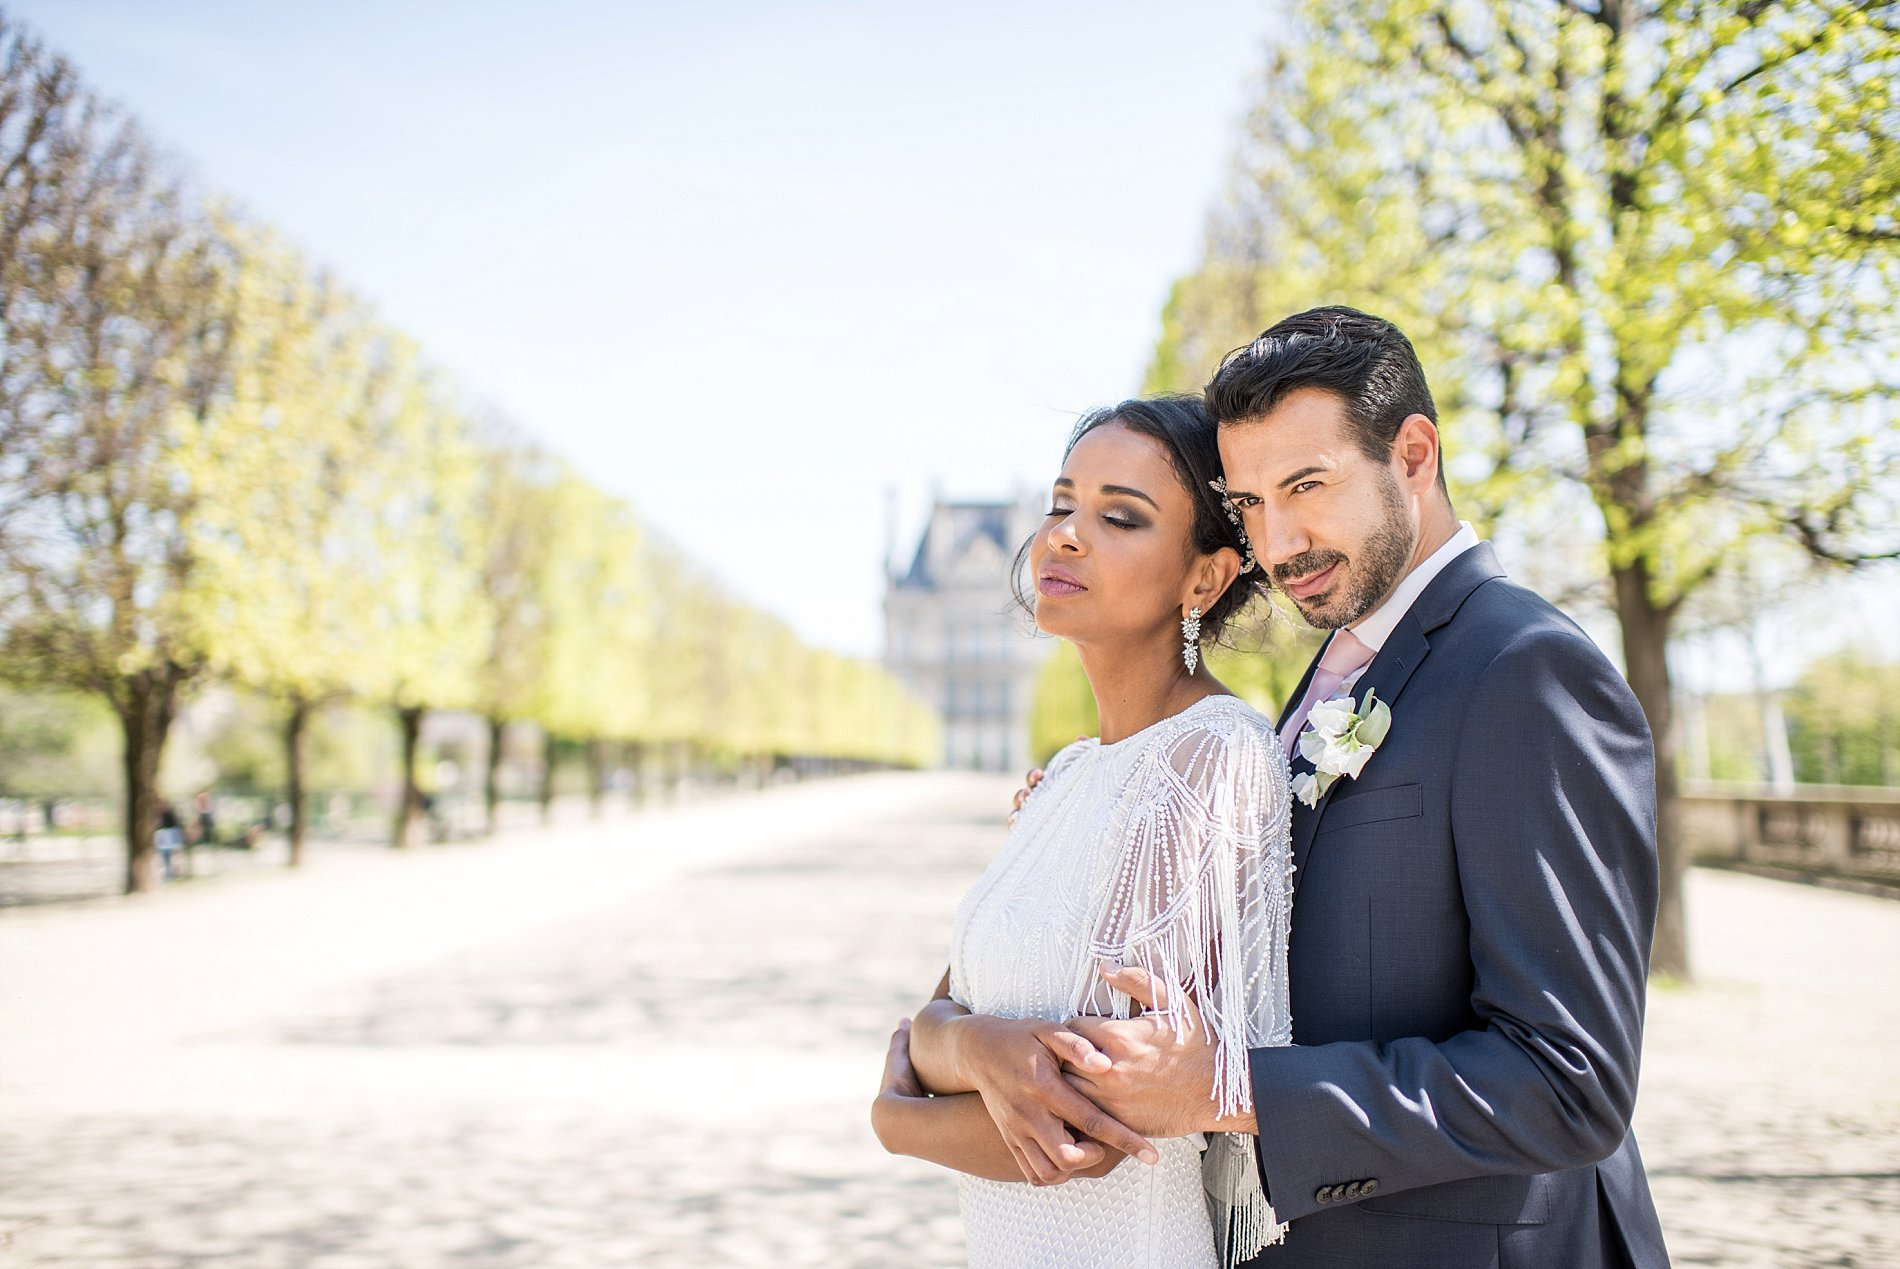 Paris elopement wedding photography by Jane Beadnell Photography-137